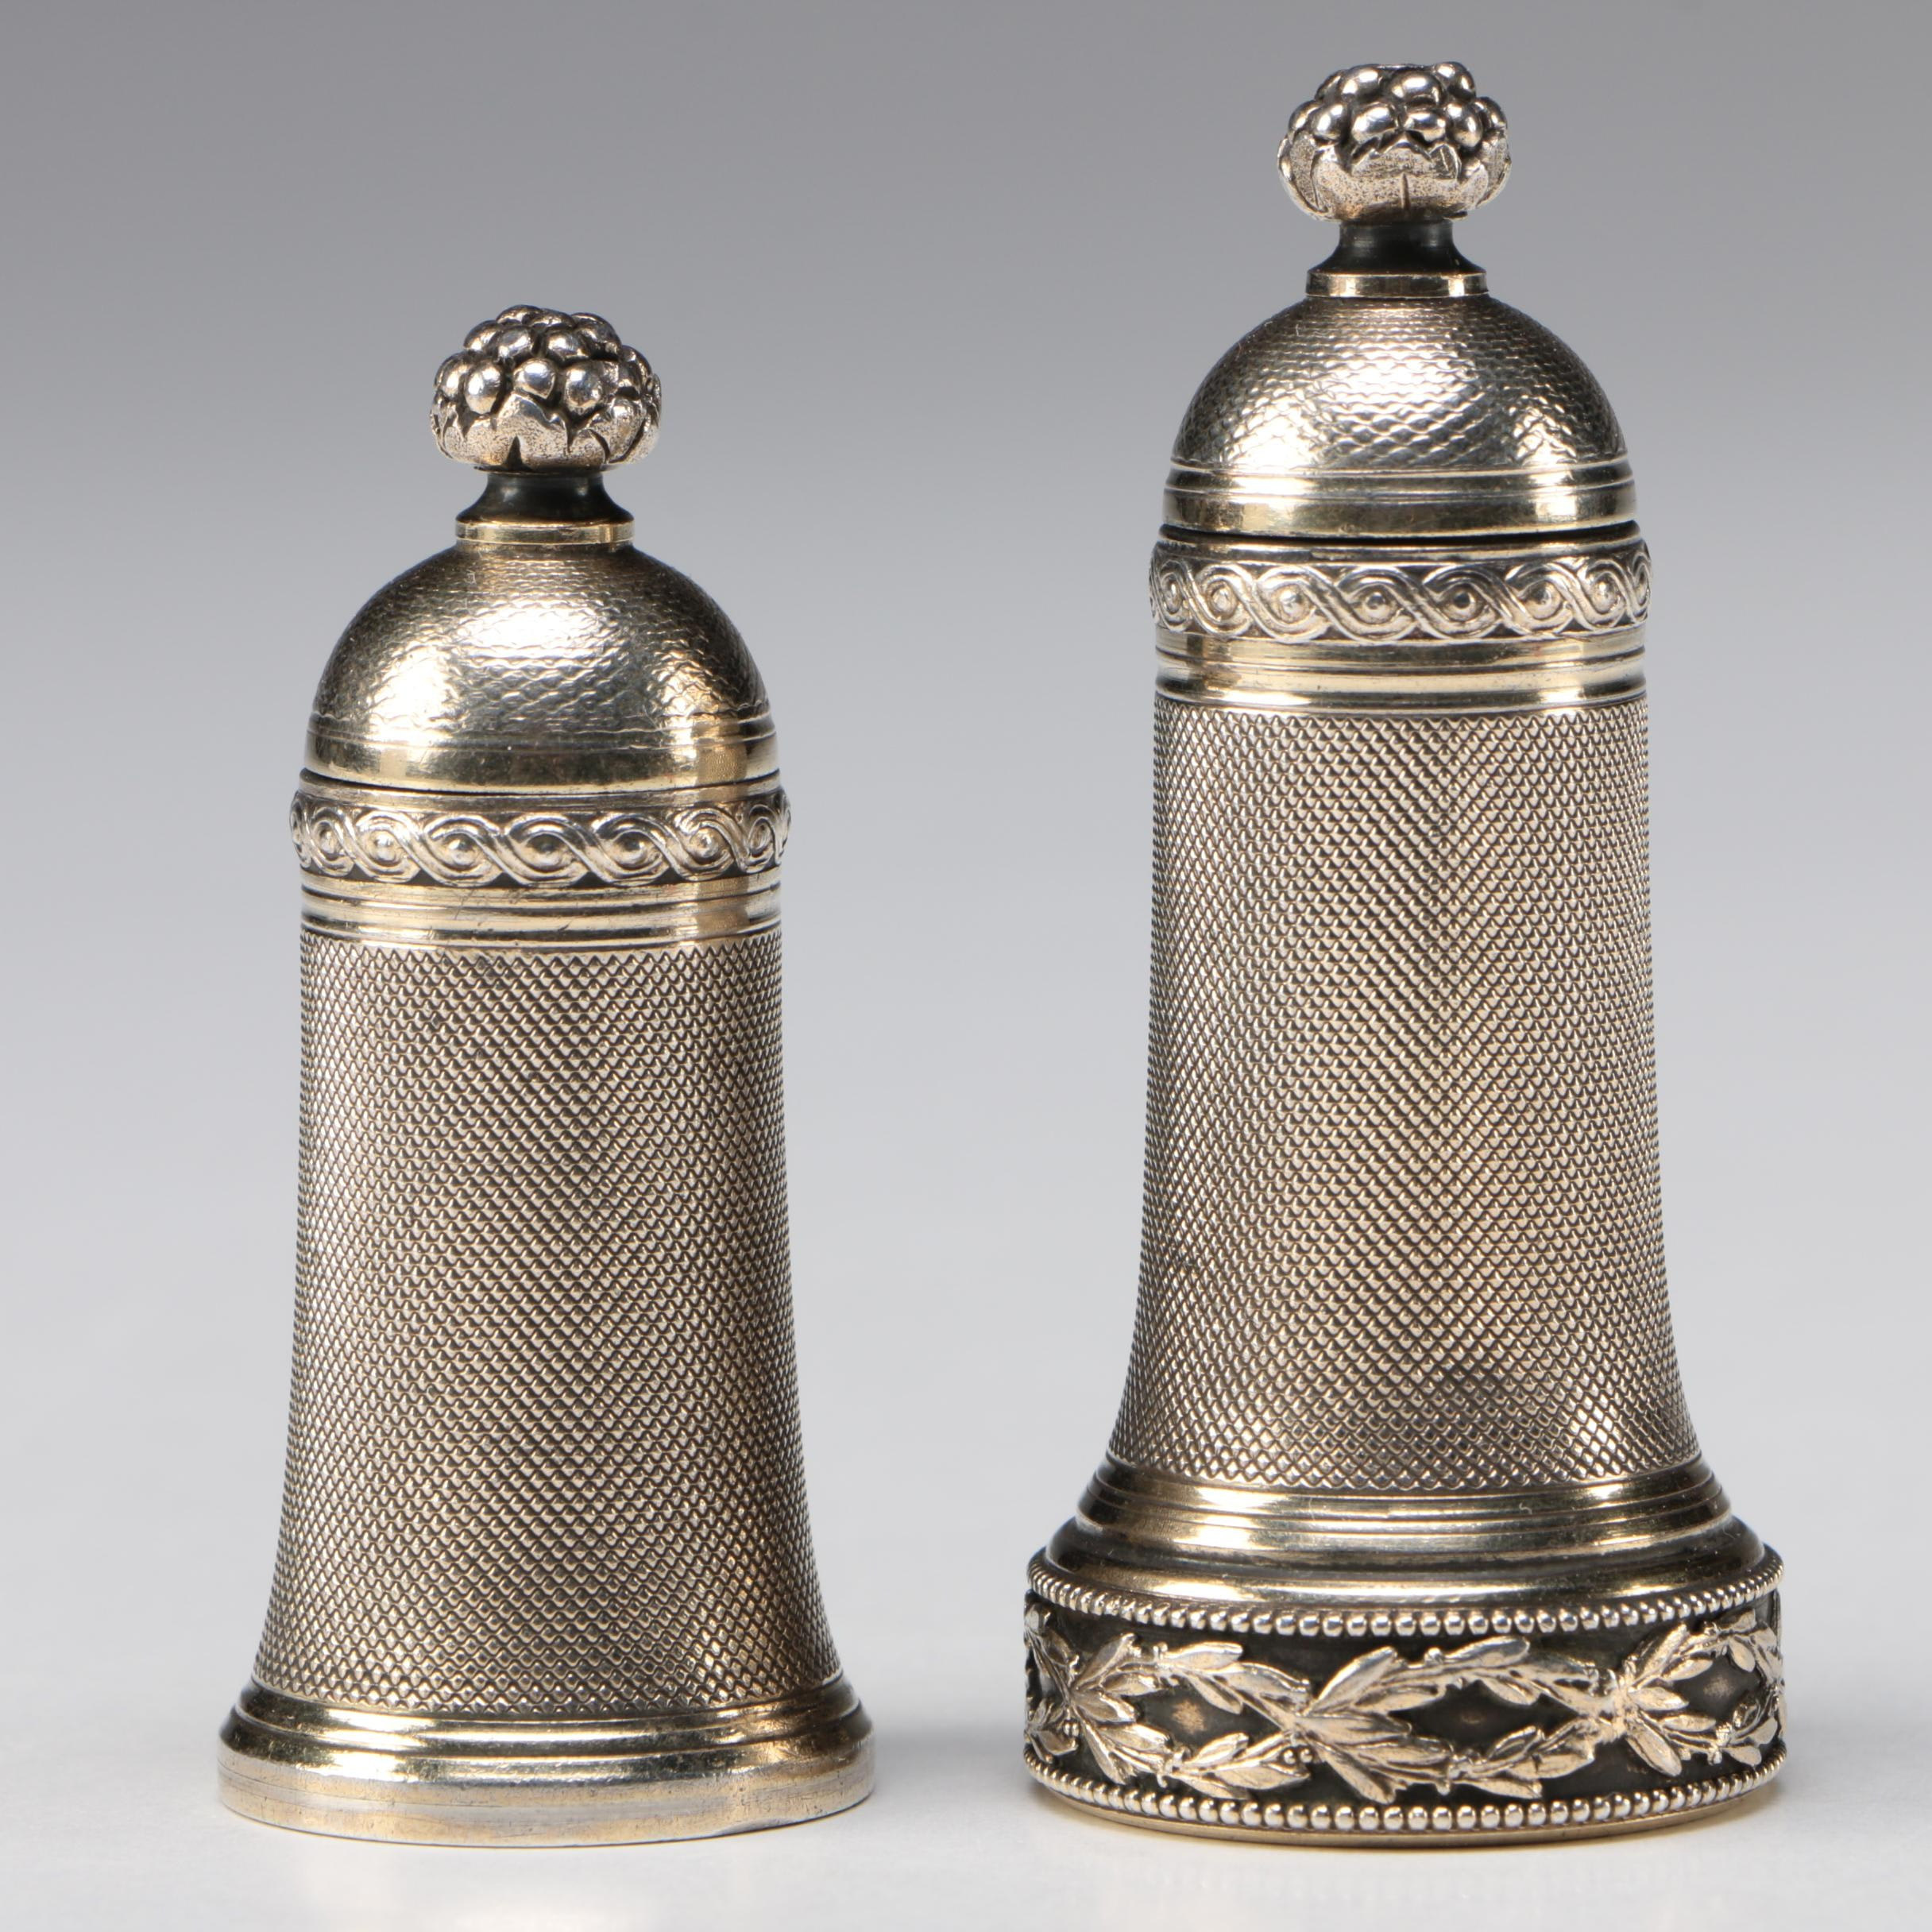 H. Fres & Cie French Sterling Silver Pipe Tampers, 1901 - 1930